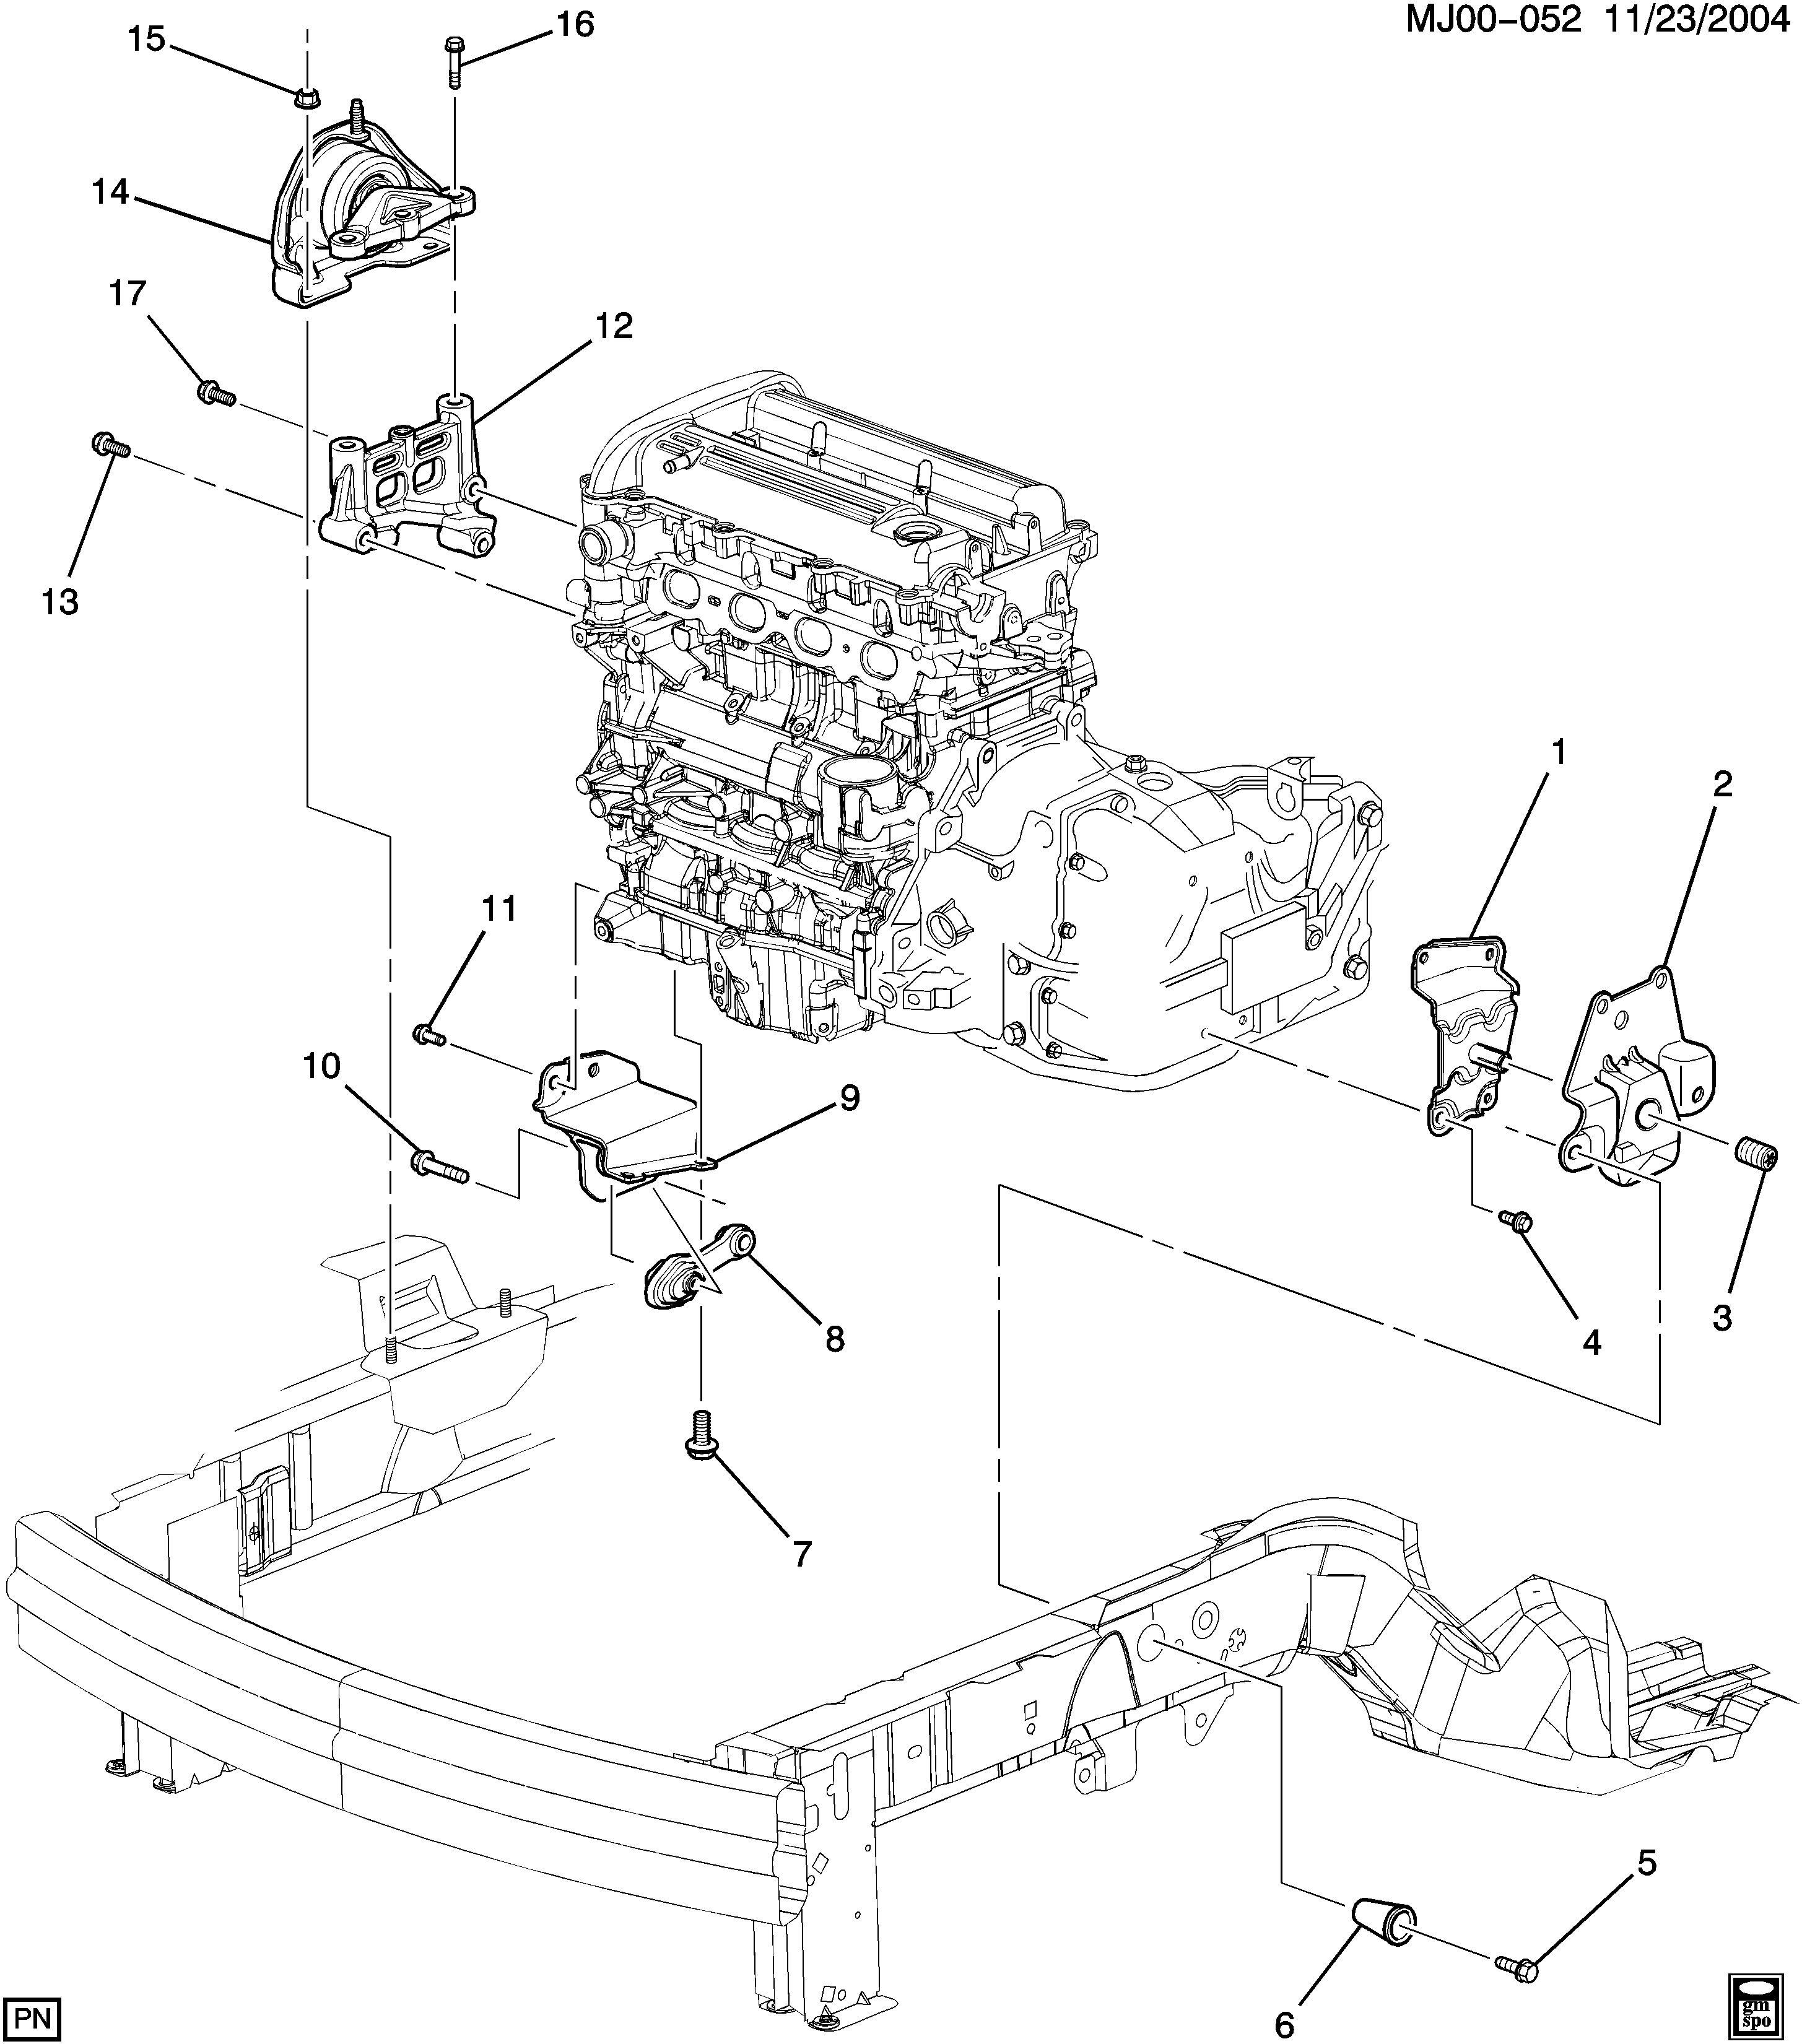 2002 Chevy Cavalier Engine Diagram Cavalier Engine & Transmission Mounting L4 Chevrolet Epc Of 2002 Chevy Cavalier Engine Diagram